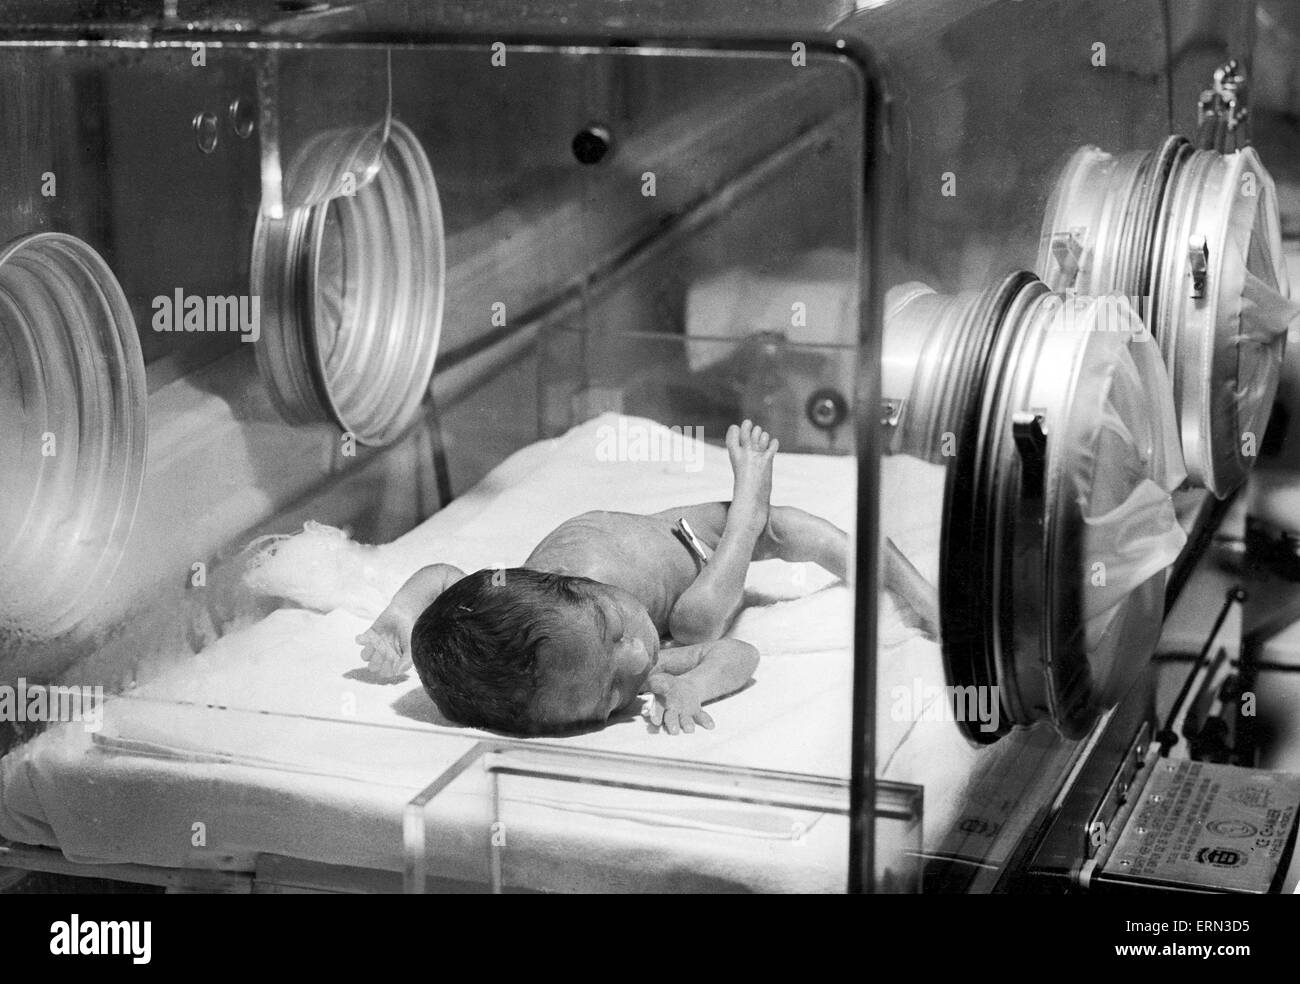 Baby in an incubator in hospital, 15th May 1956 - Stock Image